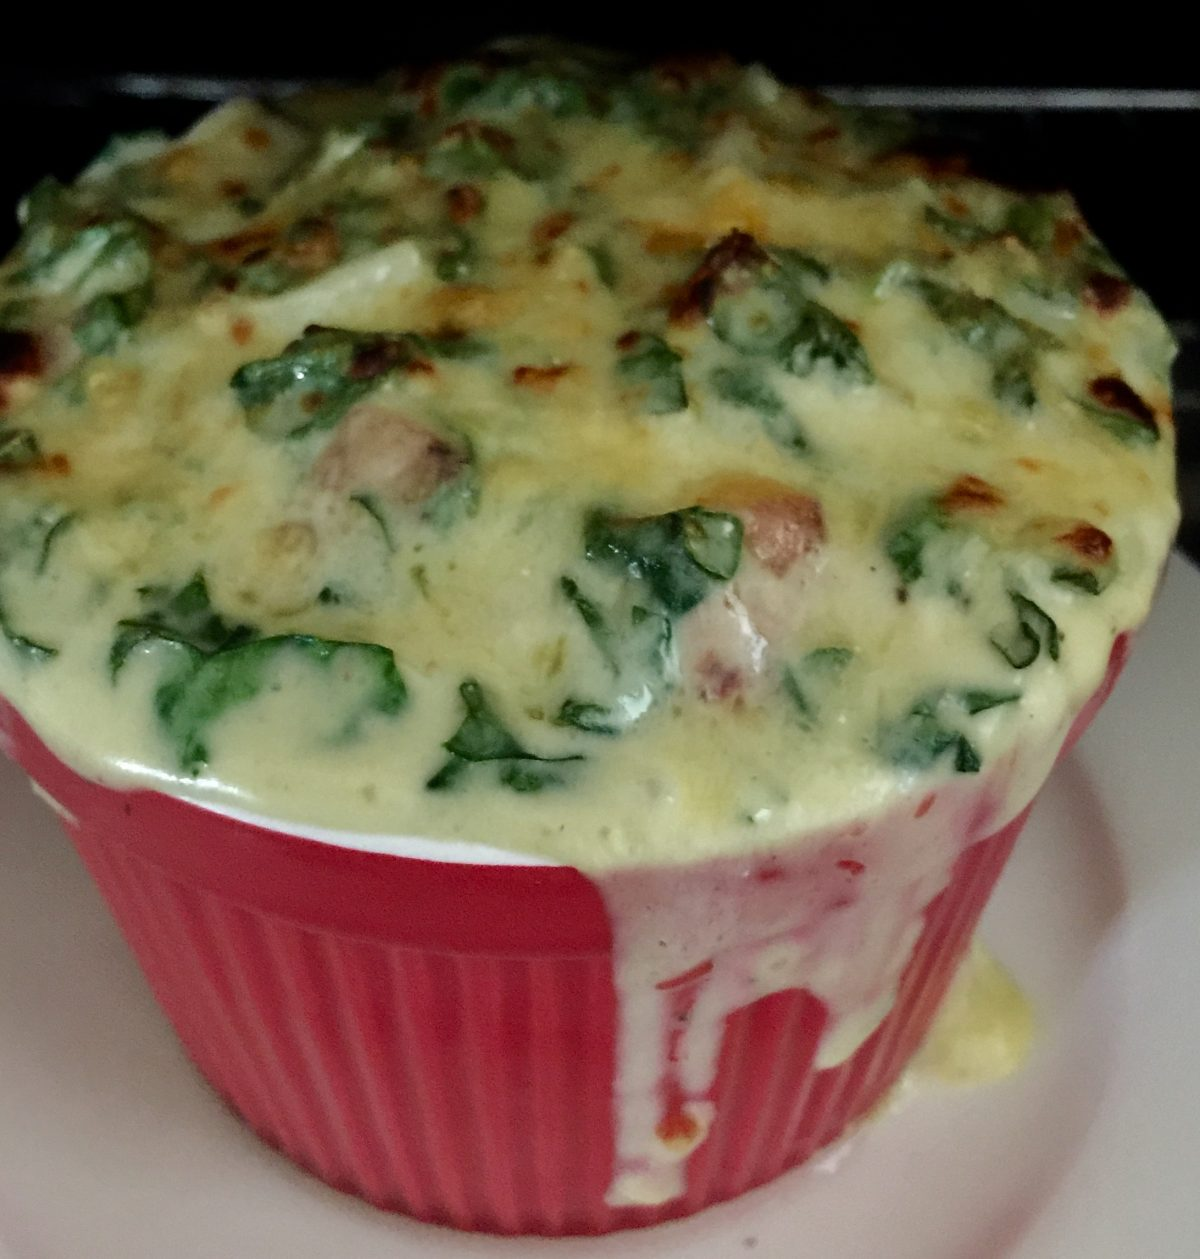 Spinach/Kale Egg Au Gratin by cookingmealsforone.com